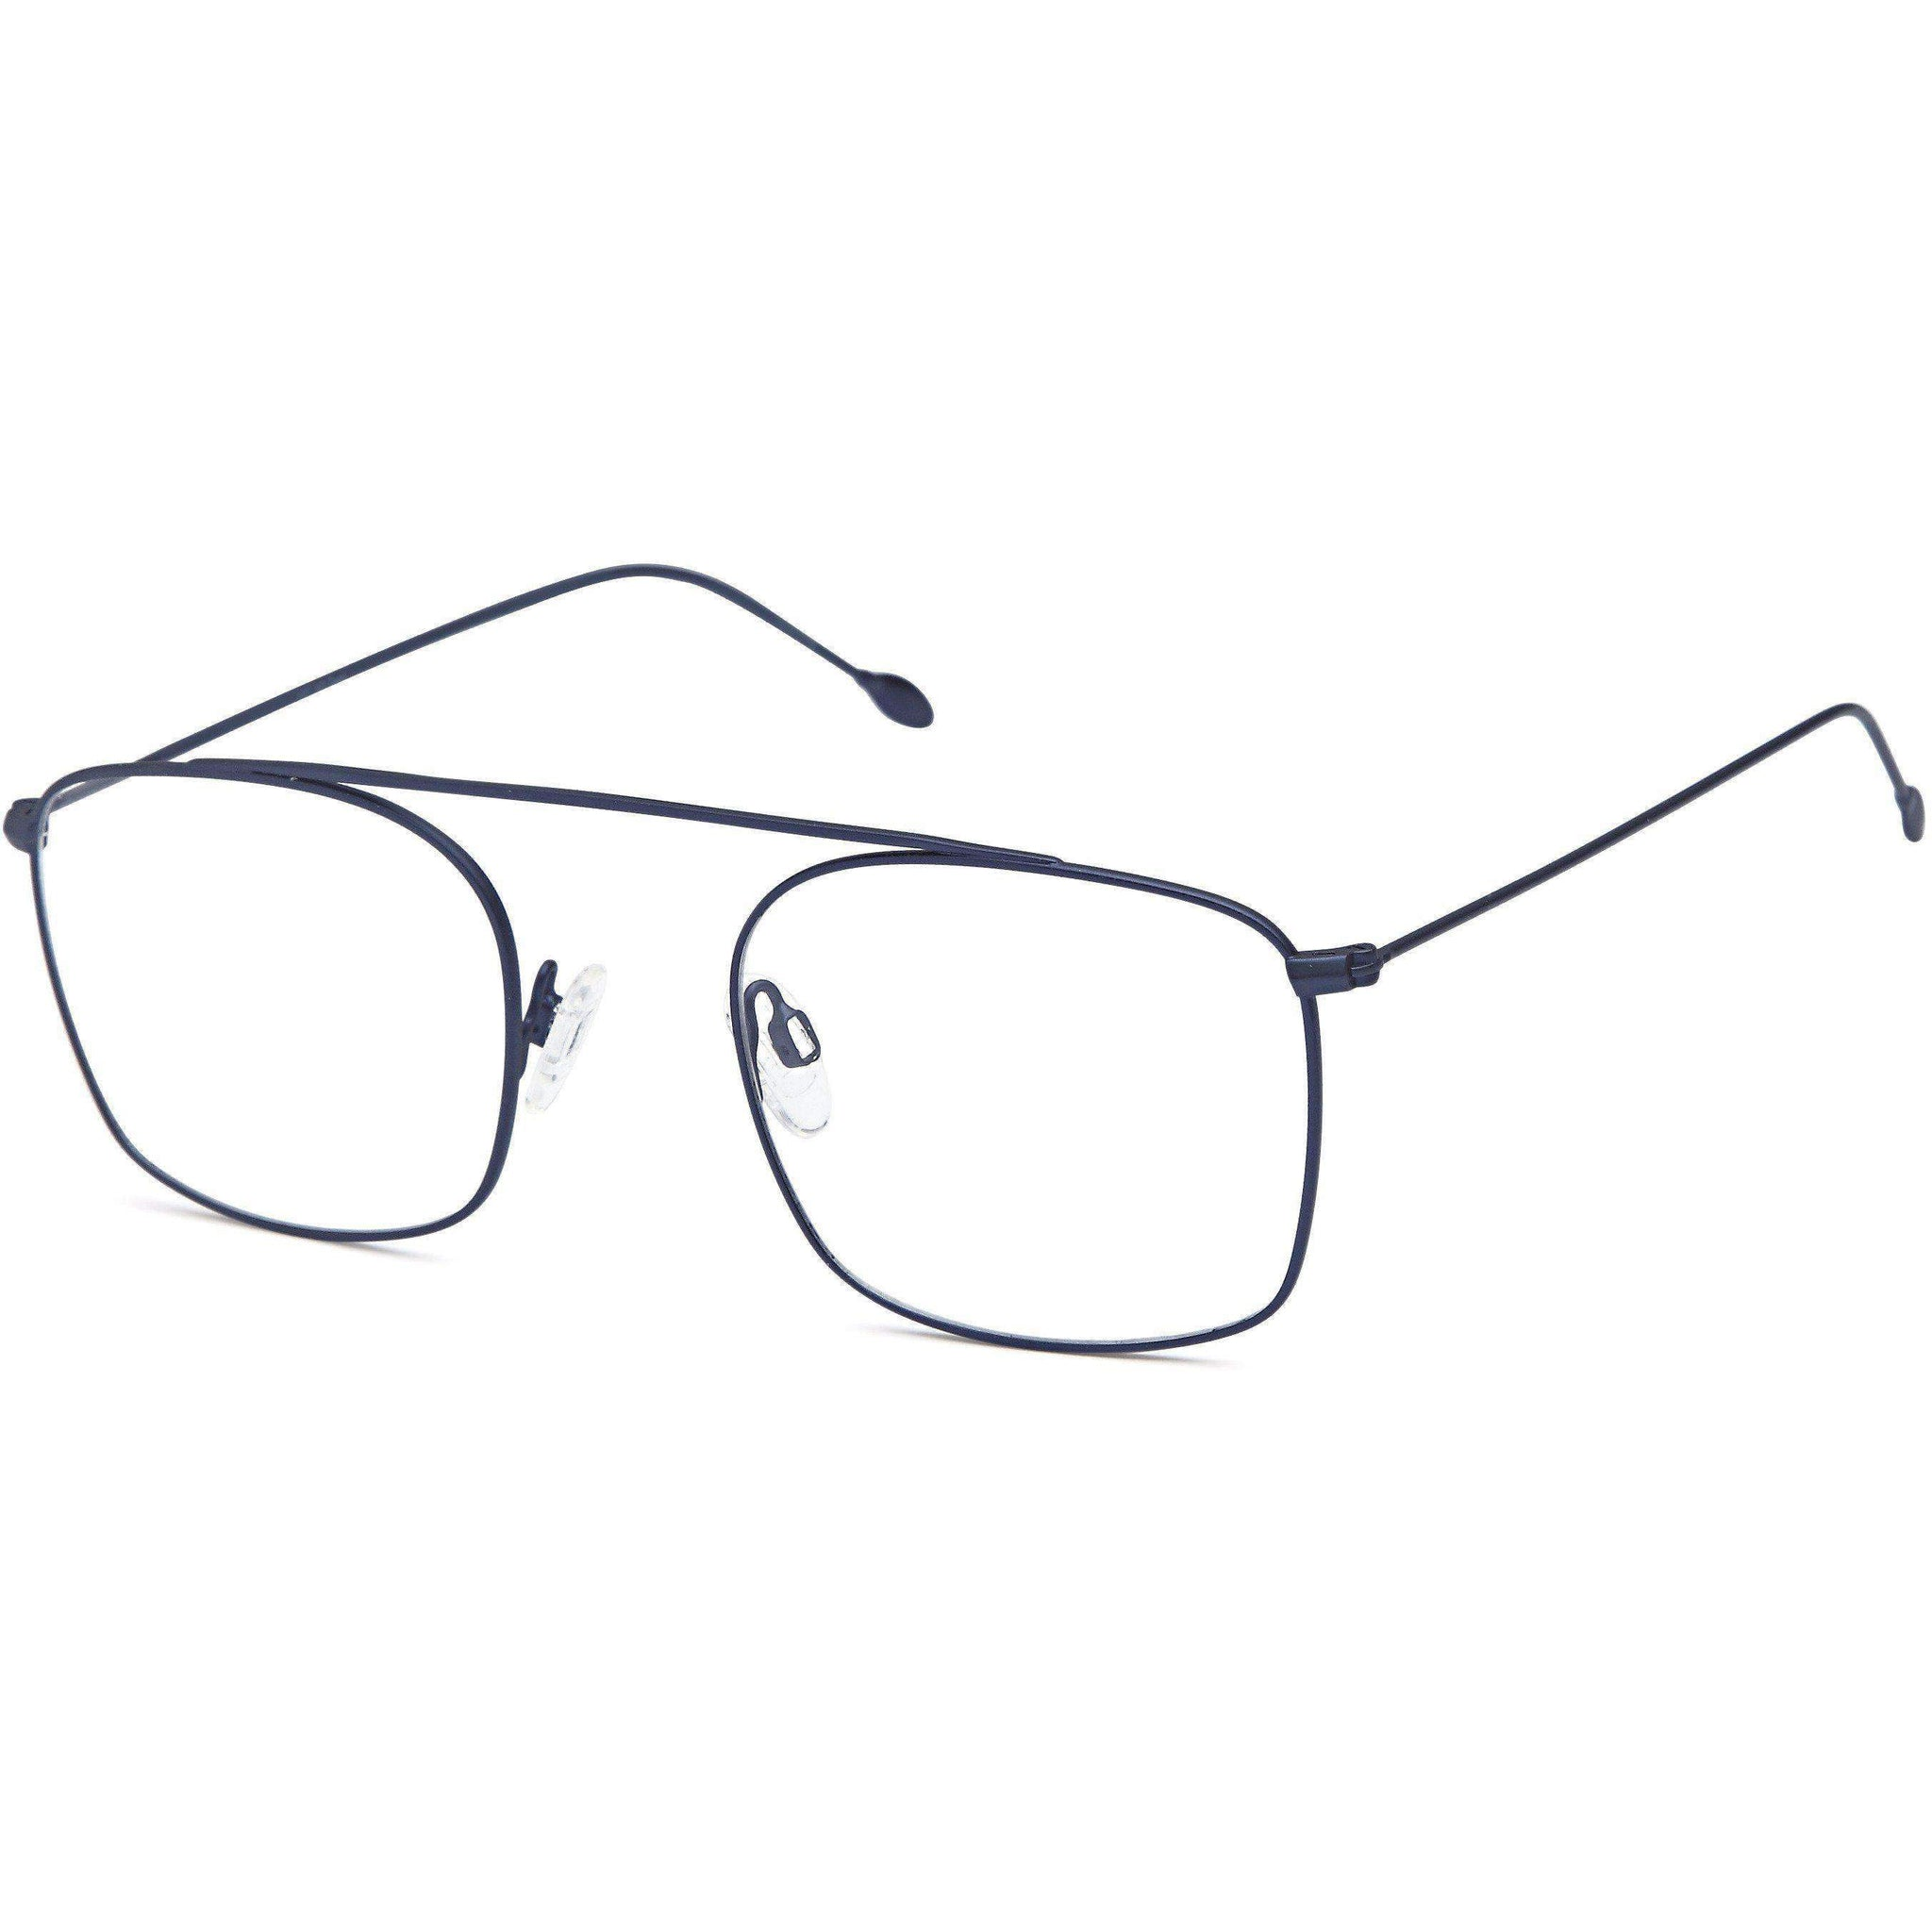 Sophistics Prescription Glasses ART 307 Frame